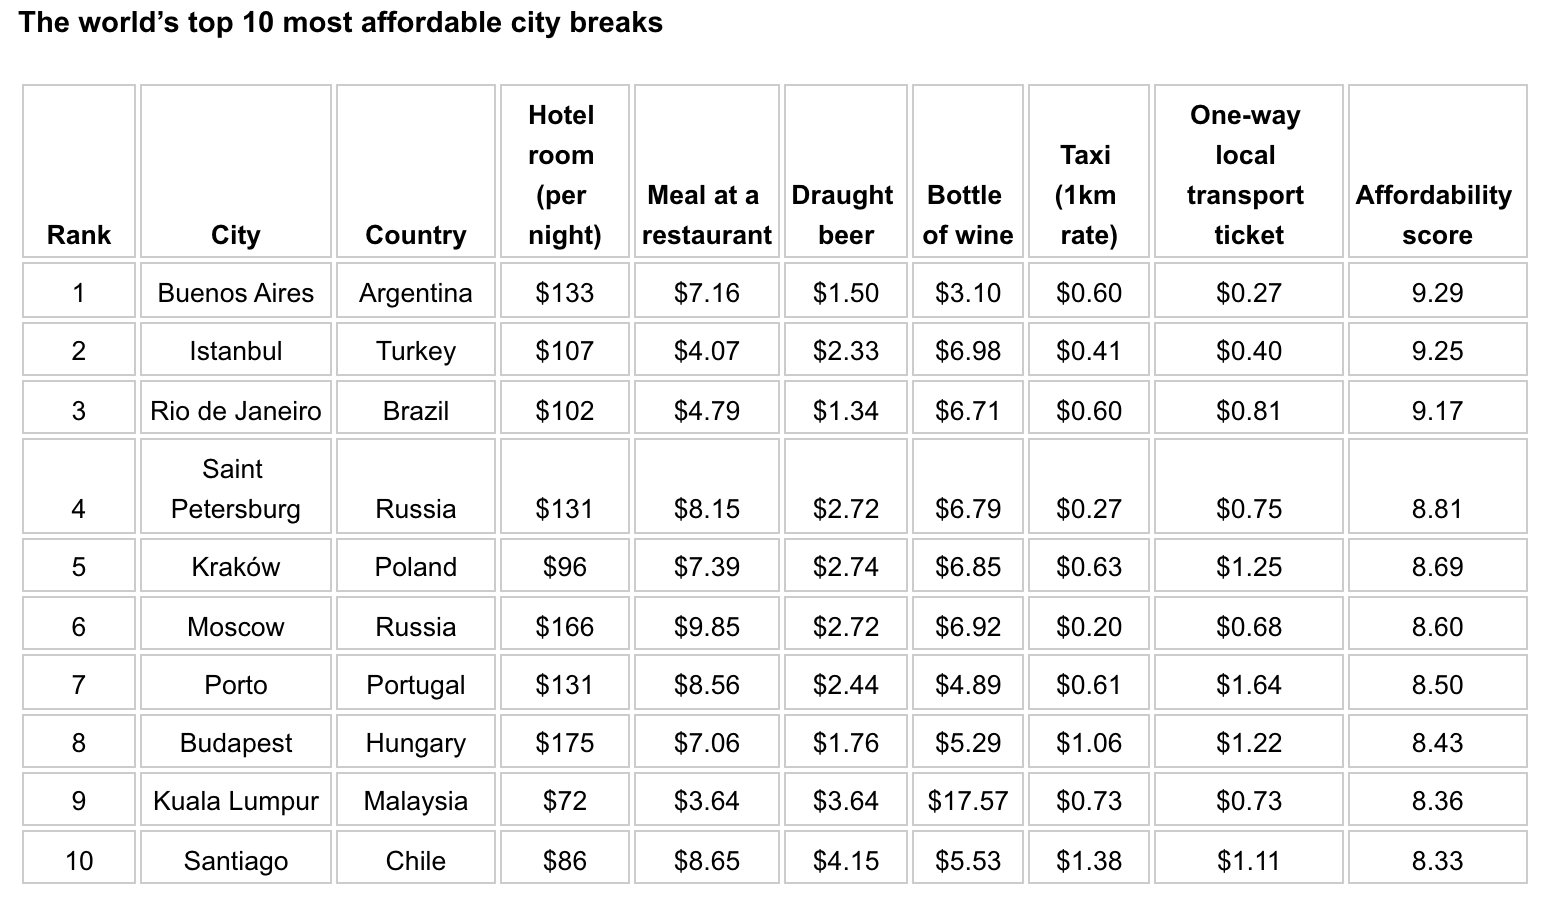 The world's top 10 most affordable city breaks.